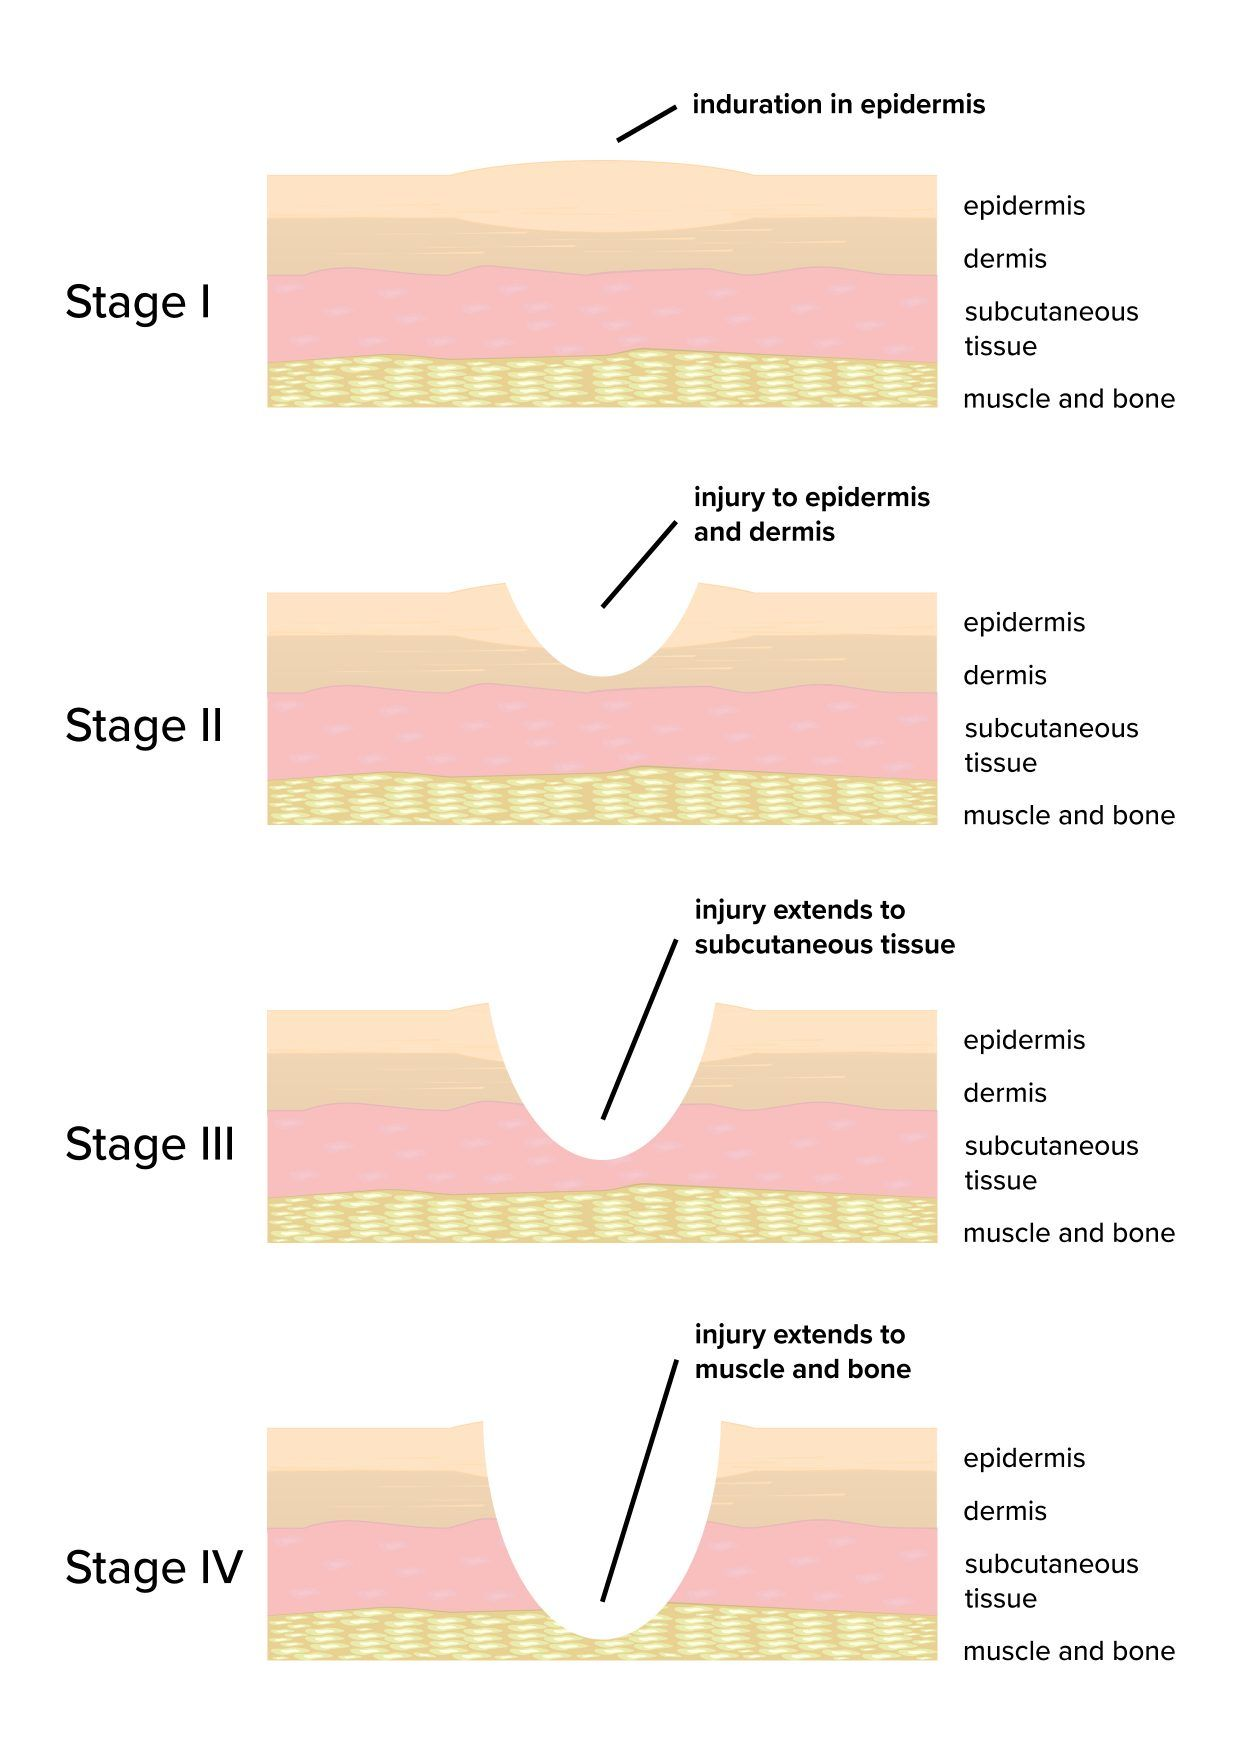 Schematic Overview Of Wound Healing Focused On The Major Manual Guide